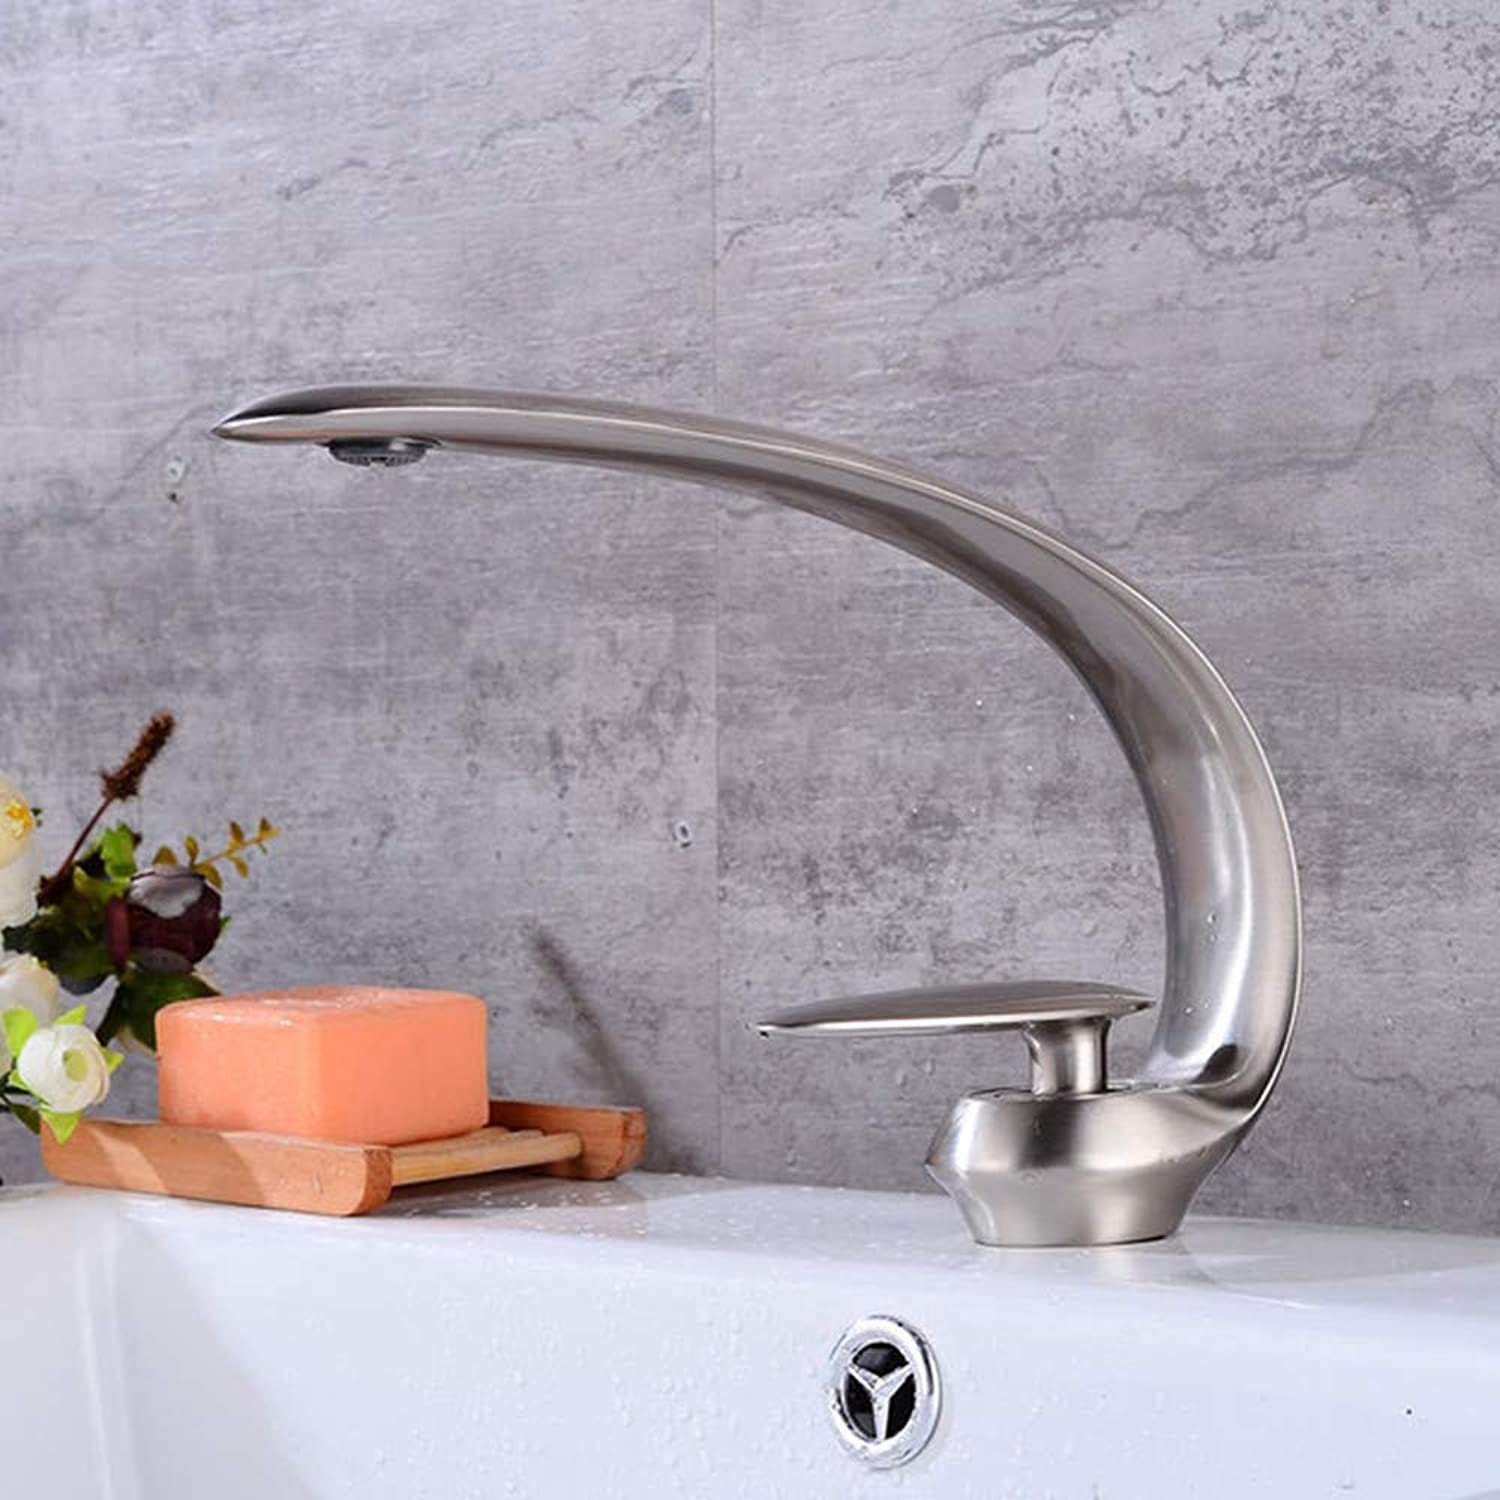 JYTNB Brushed Nickel Sink Faucet, Modern One Hole Deck Mount Lead Free Solid Brass Single Lever Hot Cold Mixer Sink Tap Washbasin Washroom Lavatory Sink Faucet